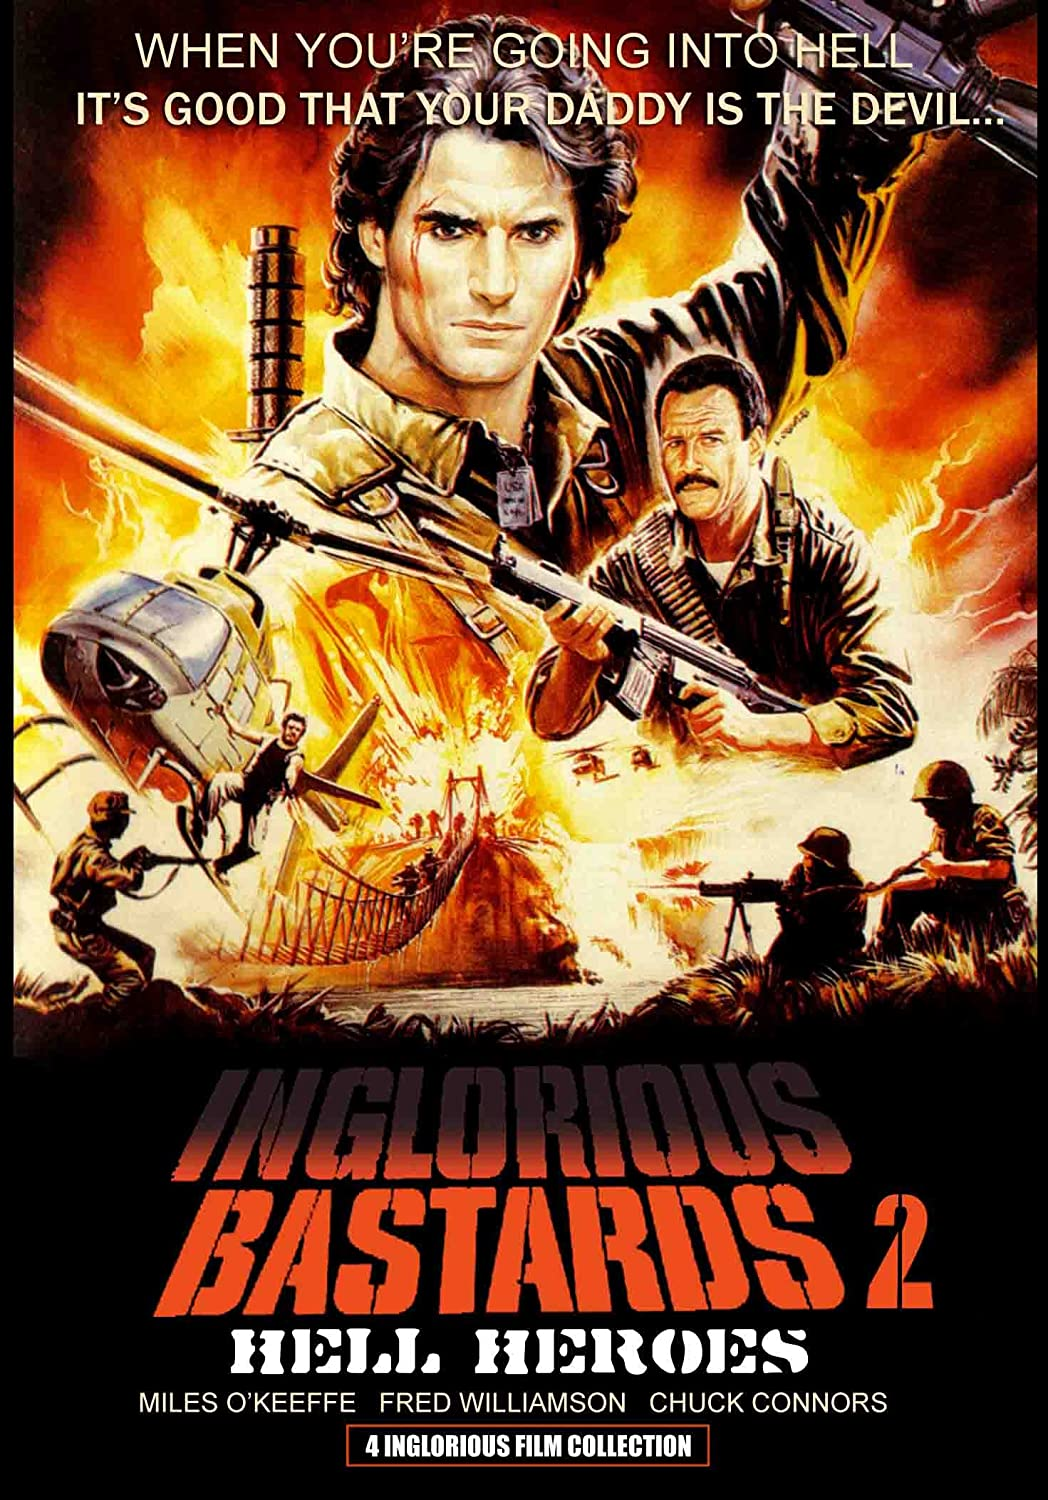 com inglorious bastards hell heroes miles o keeffe com inglorious bastards 2 hell heroes miles o keeffe fred williamson scott green gabriele gori mike n daniel alvarado chuck connors